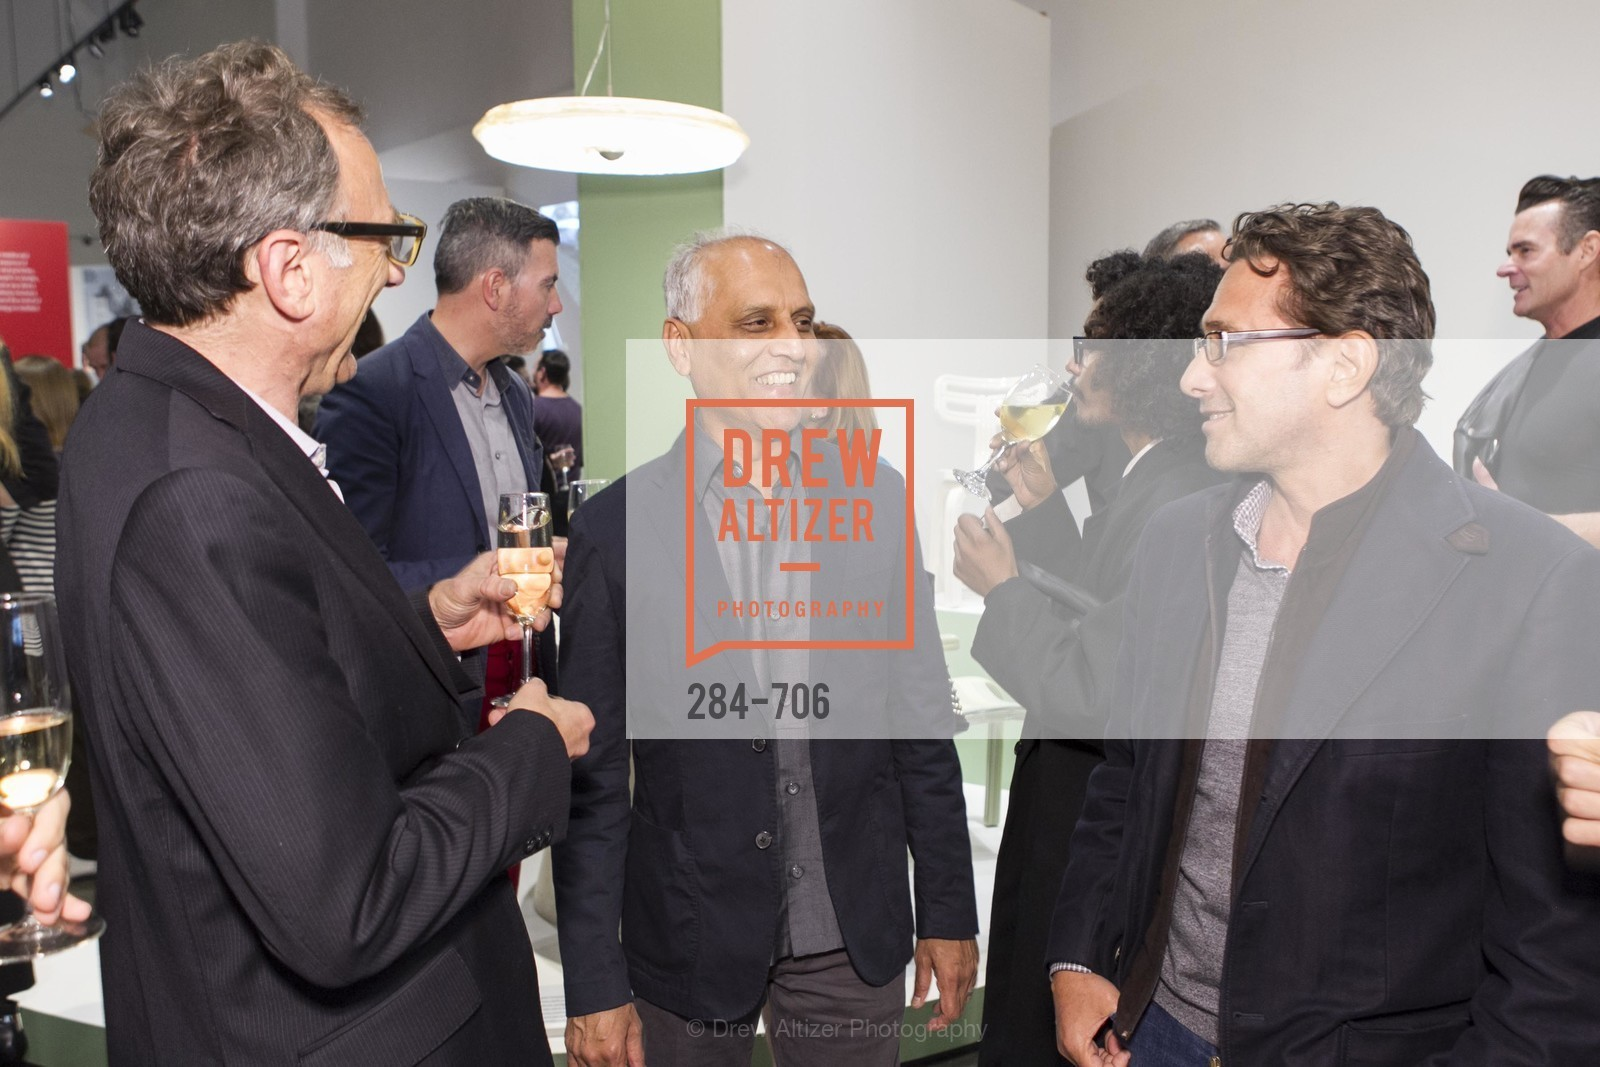 Zahid Sardar, Anthony Fish, Exhibit Opening at the MUSEUM OF CRAFT AND DESIGN - Hands Off: New Dutch Design at the Confluence of Technology & Craft, US, May 8th, 2015,Drew Altizer, Drew Altizer Photography, full-service agency, private events, San Francisco photographer, photographer california